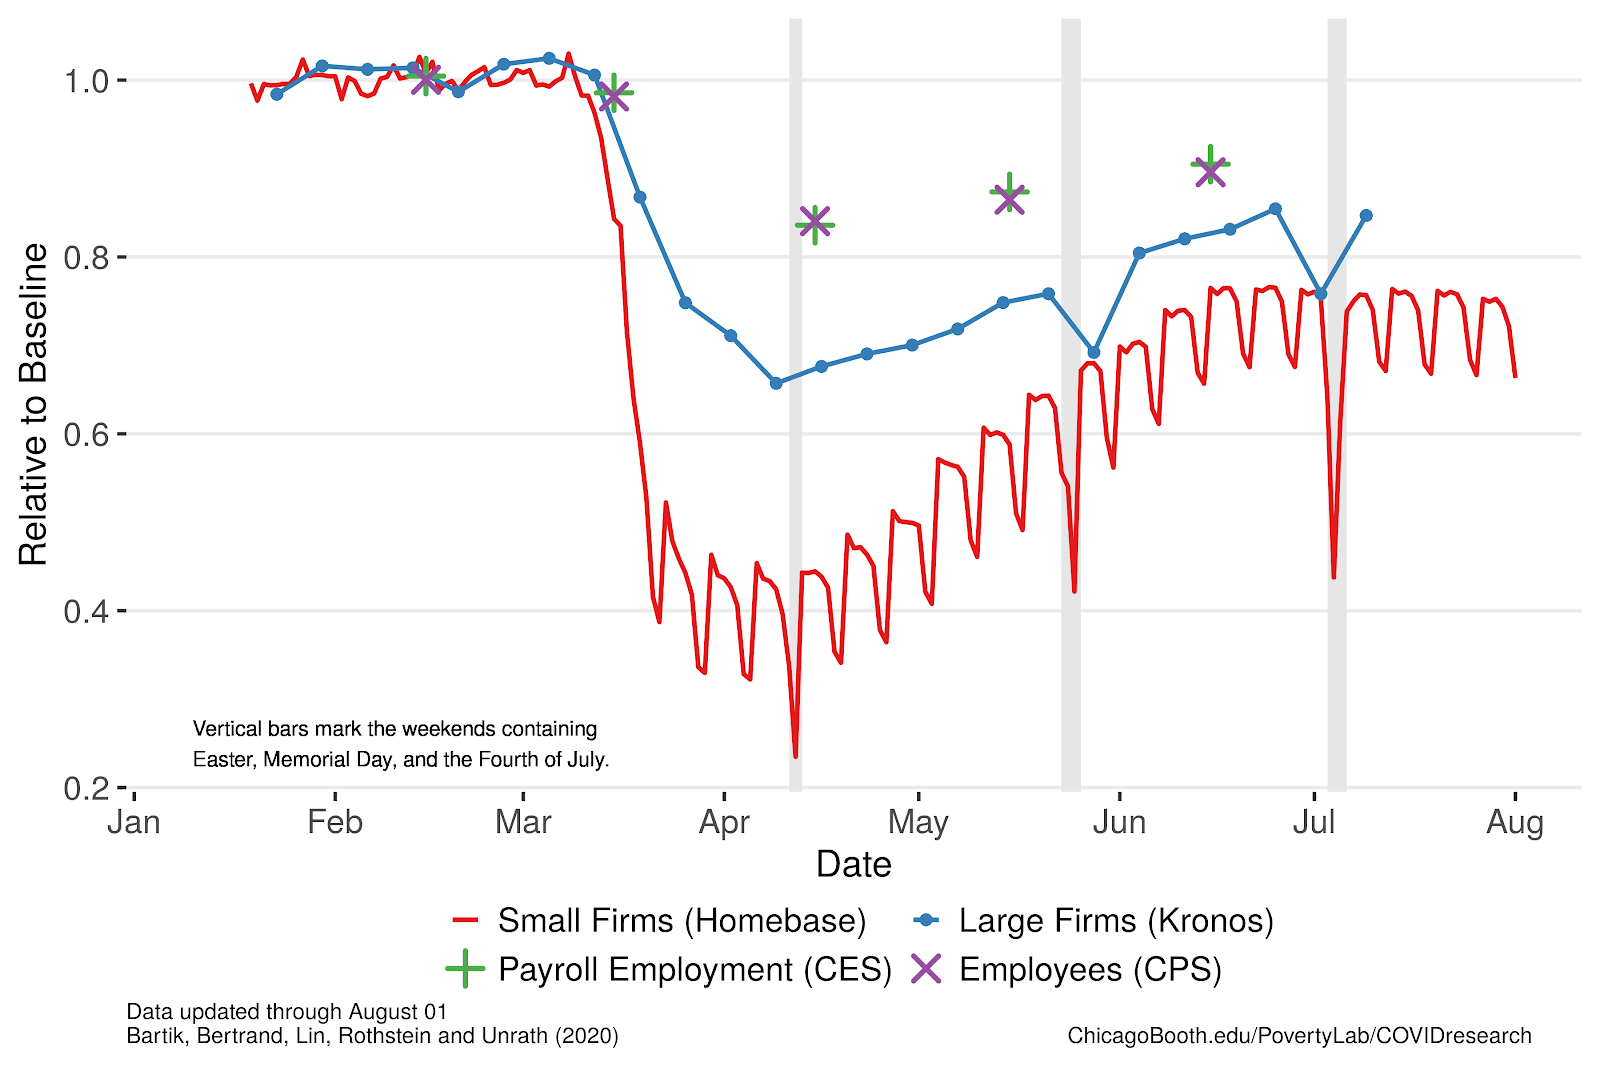 Line graph showing employment trends beginning in January